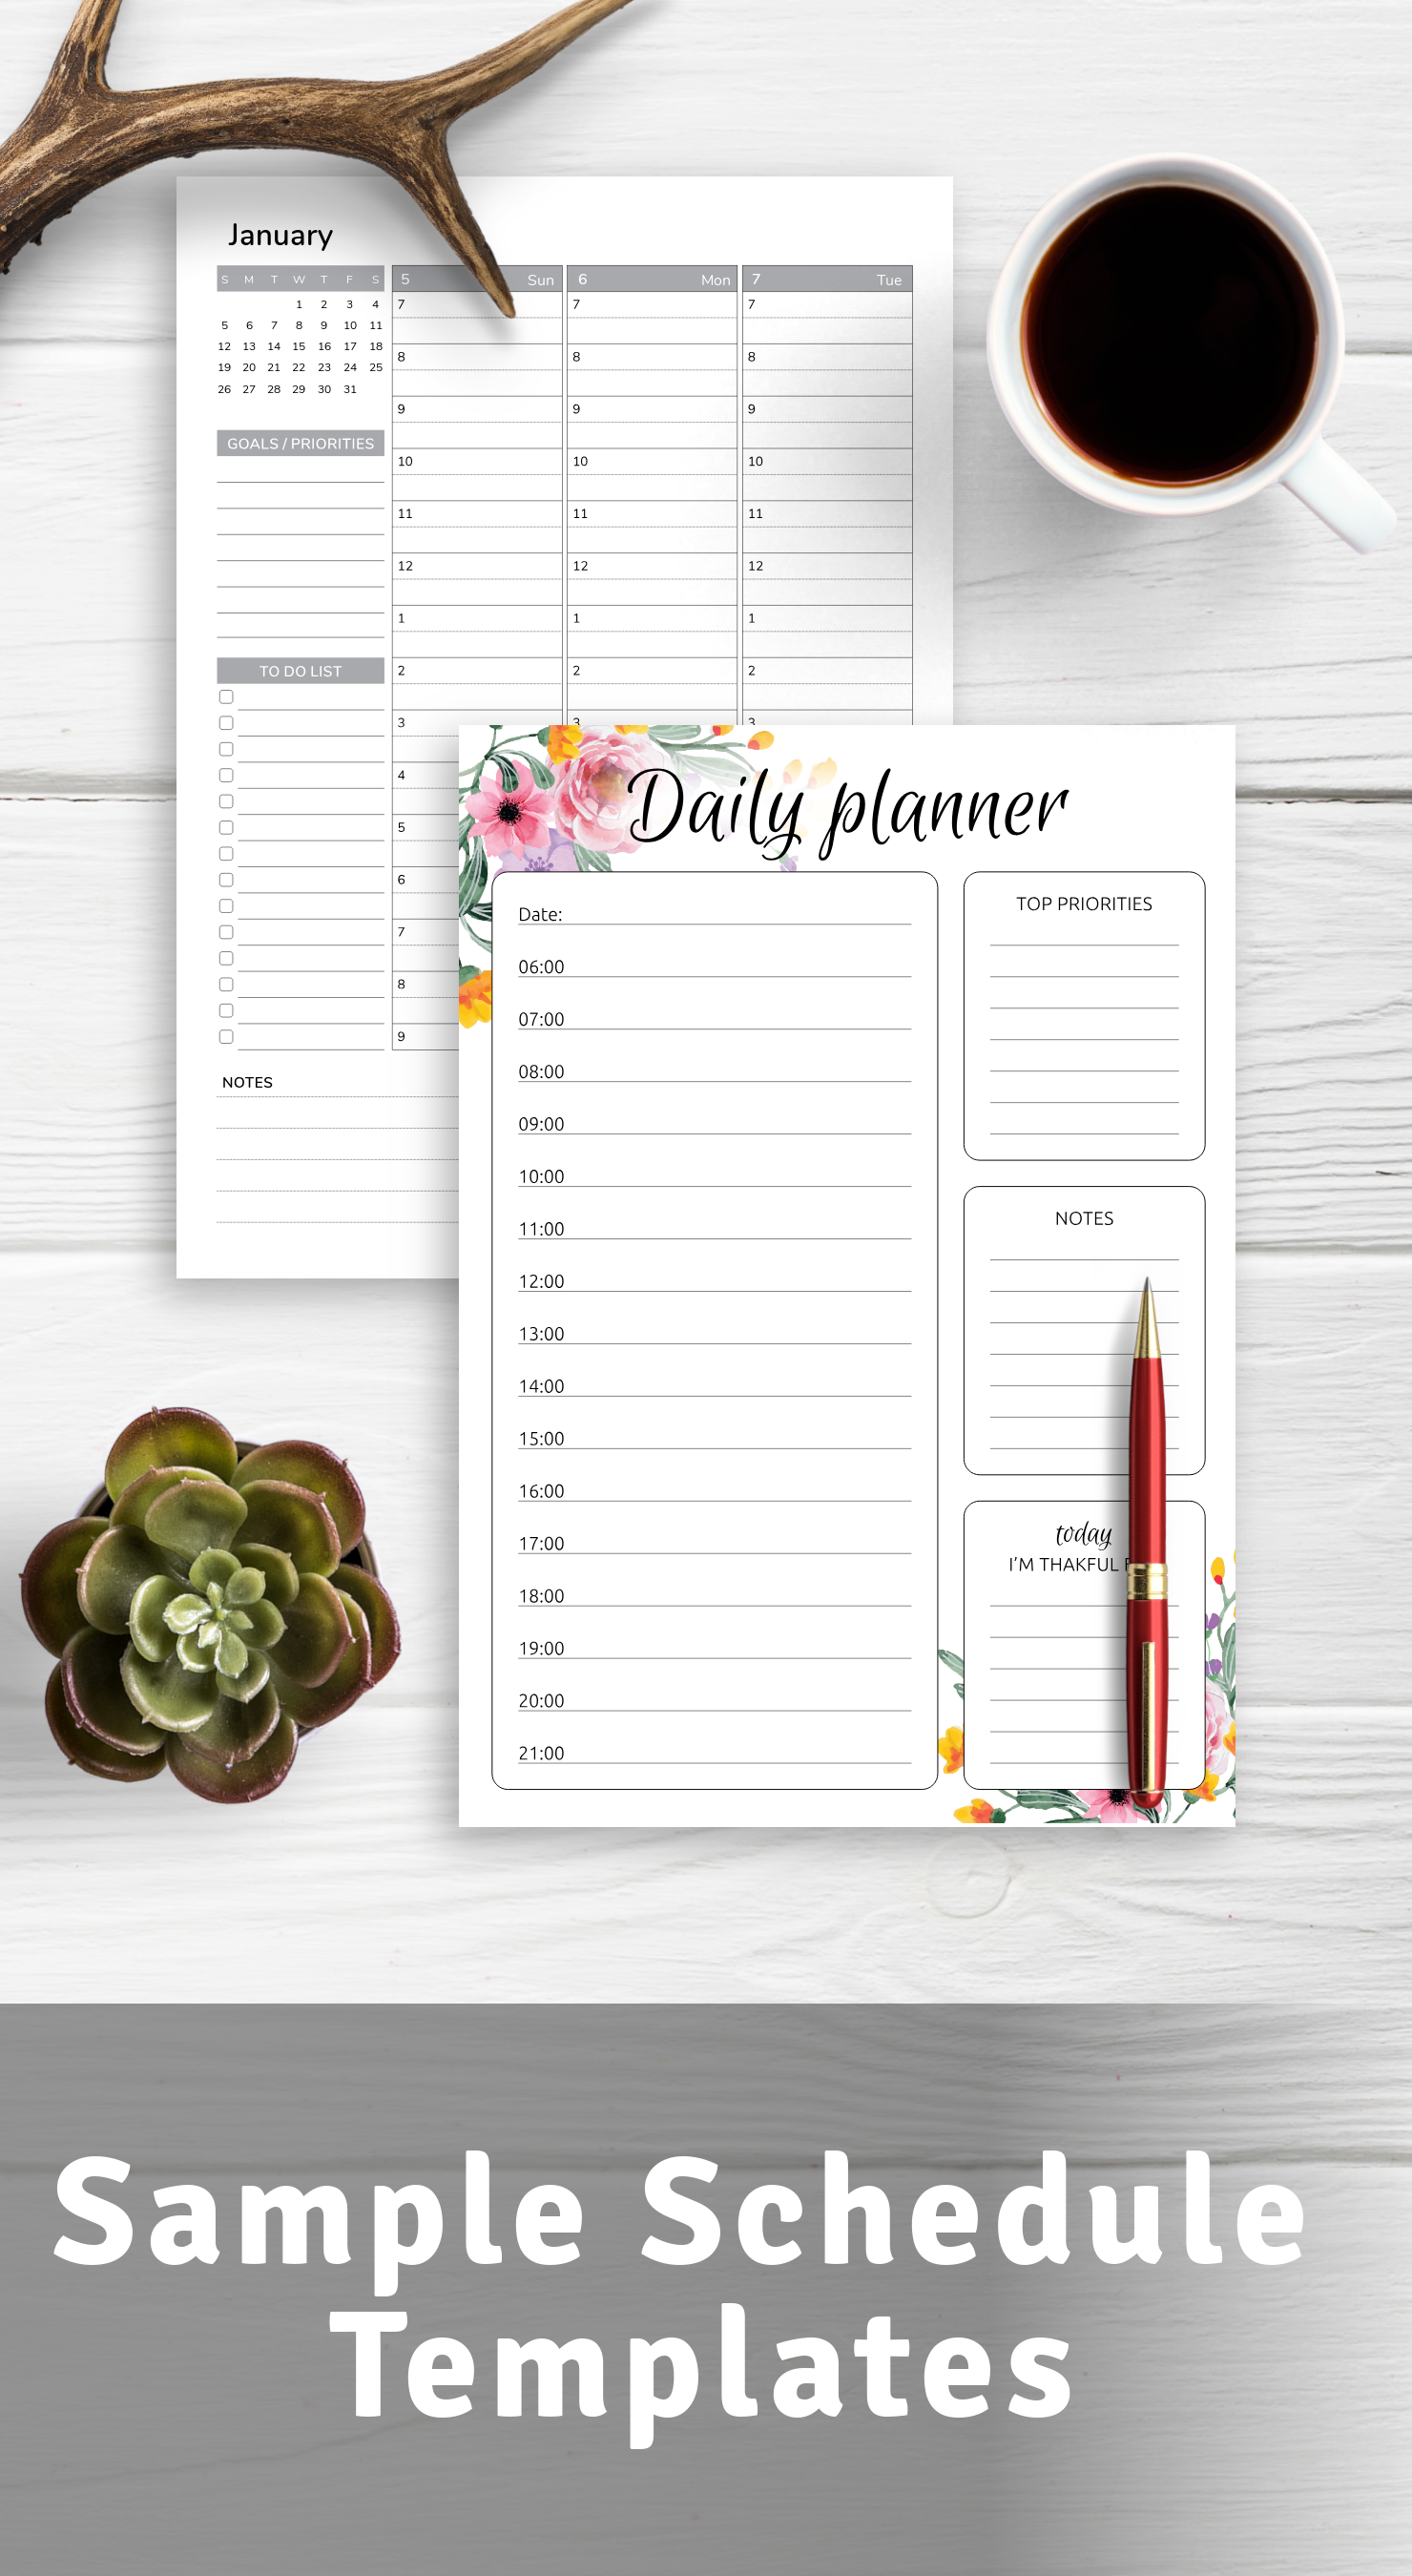 Sample Schedule Templates PDF